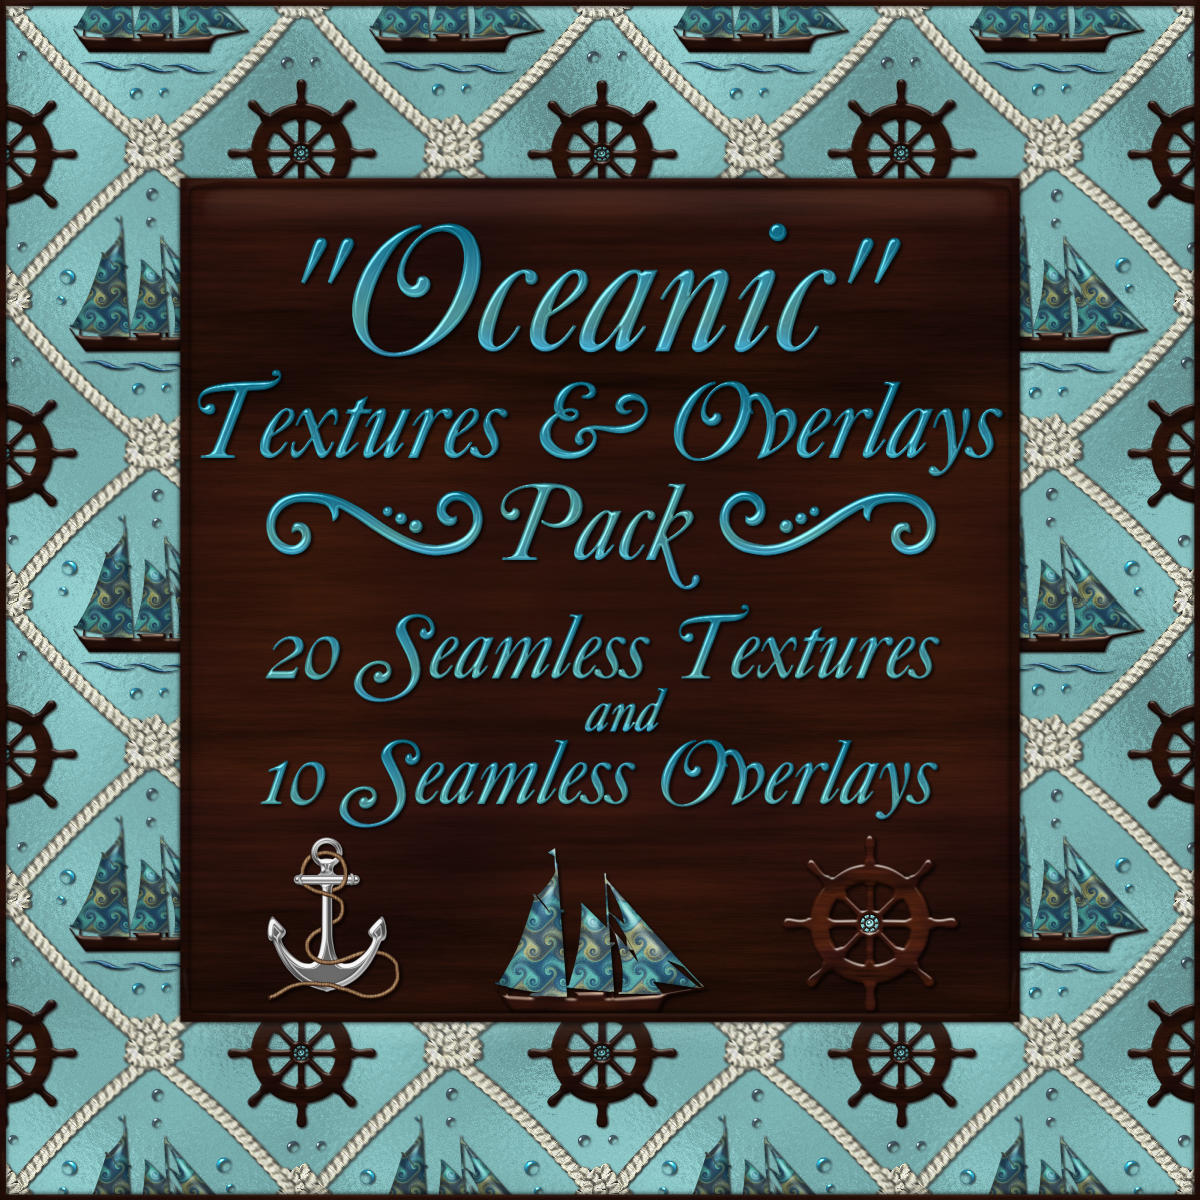 Oceanic Seamless Textures and Overlays Pack